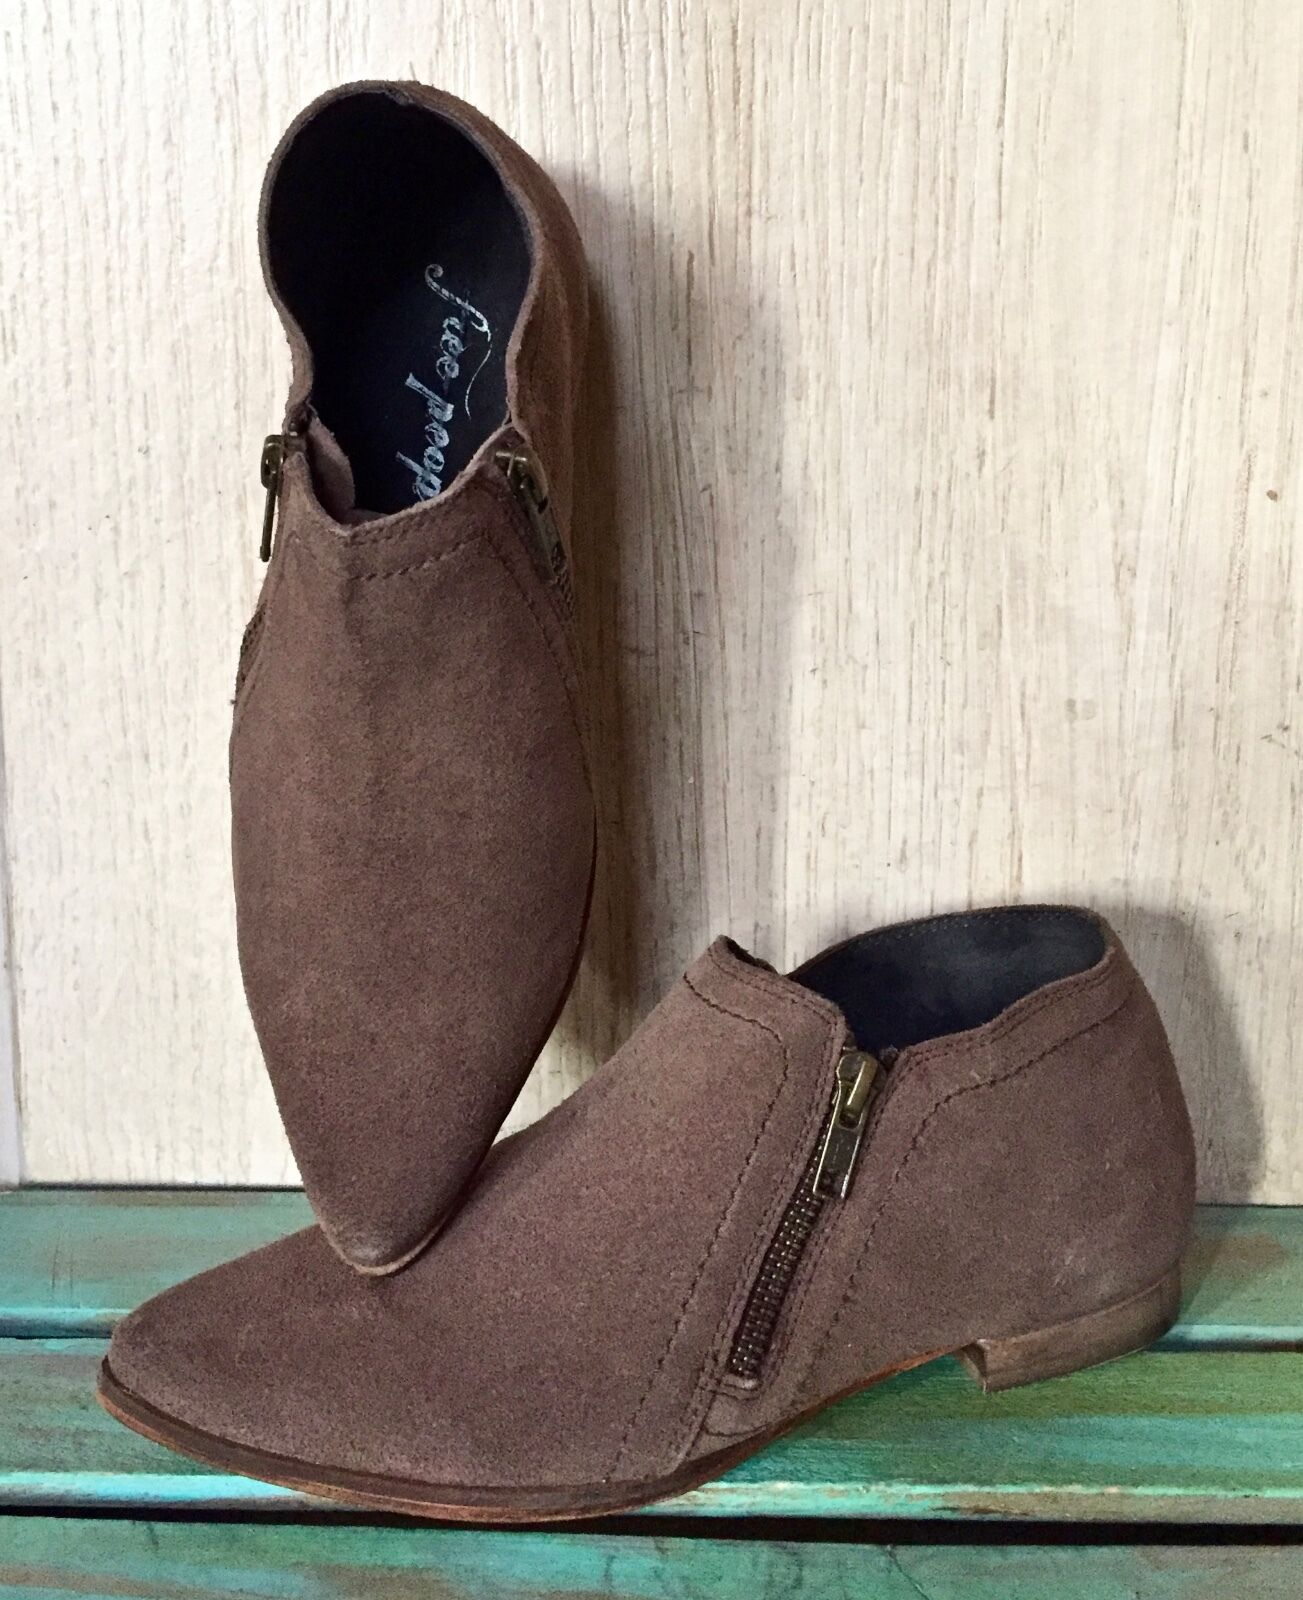 NIB Free People taupe brown suede In Sight Zipper Pointed Toe Boots 37   6-6.5